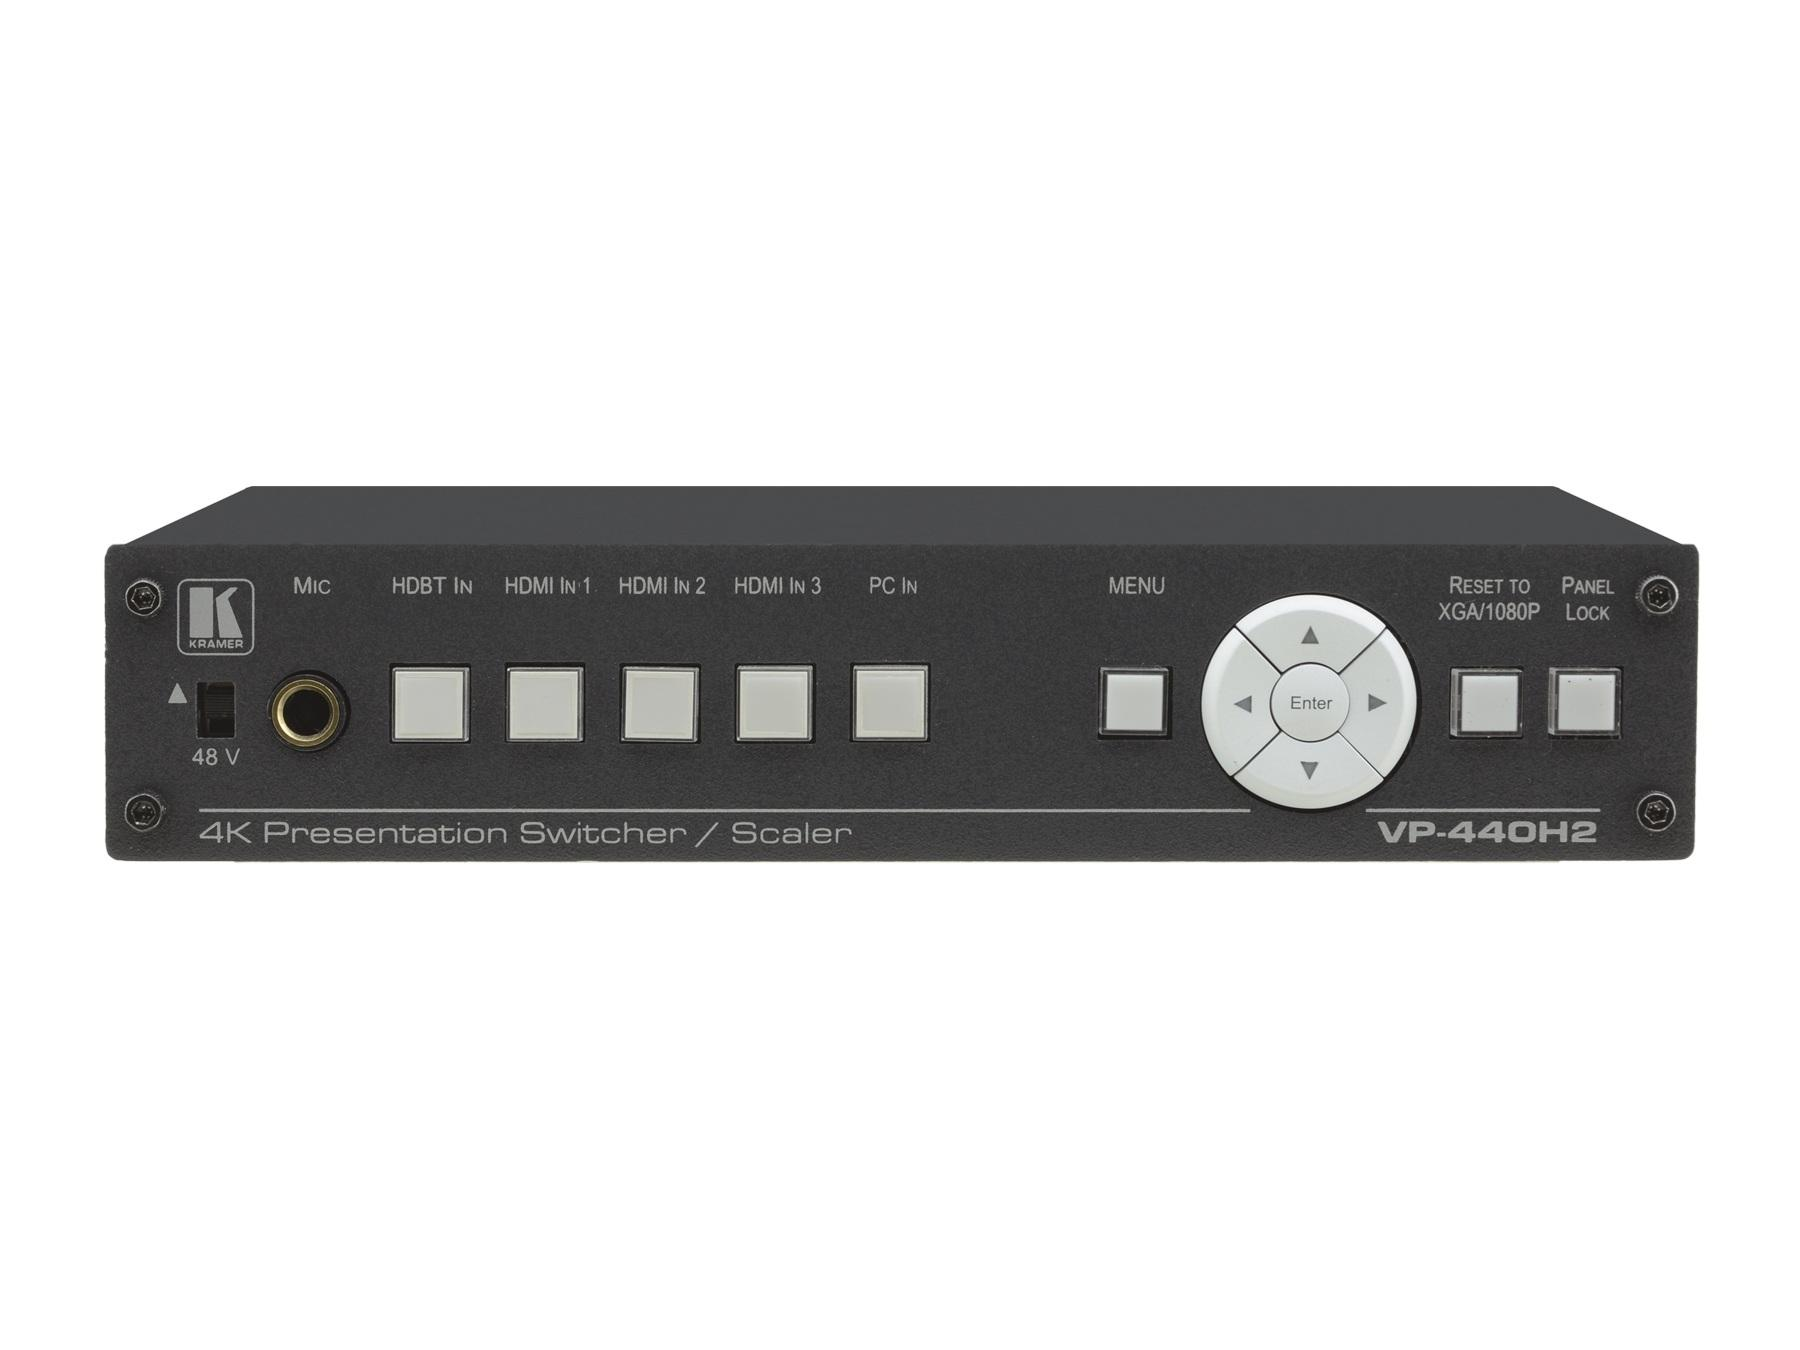 Kramer VP-440H2 Compact 5-Input 4K60 Presentation Switcher/Scaler with HDBaseT/HDMI Simultaneous Outputs